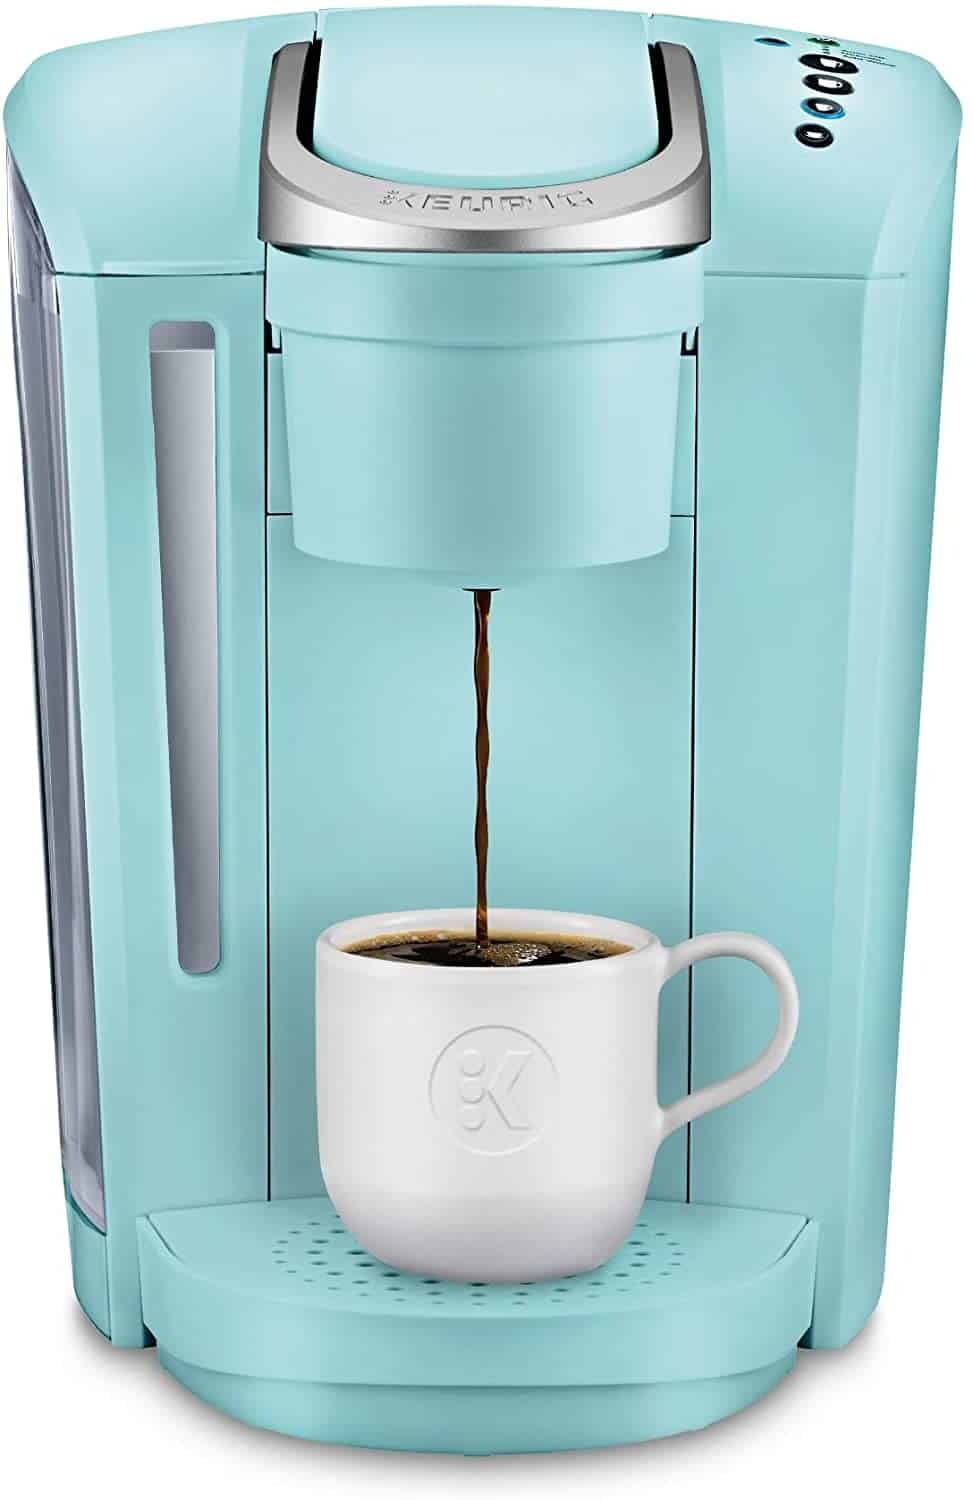 K-Select Coffee Maker - Oasis